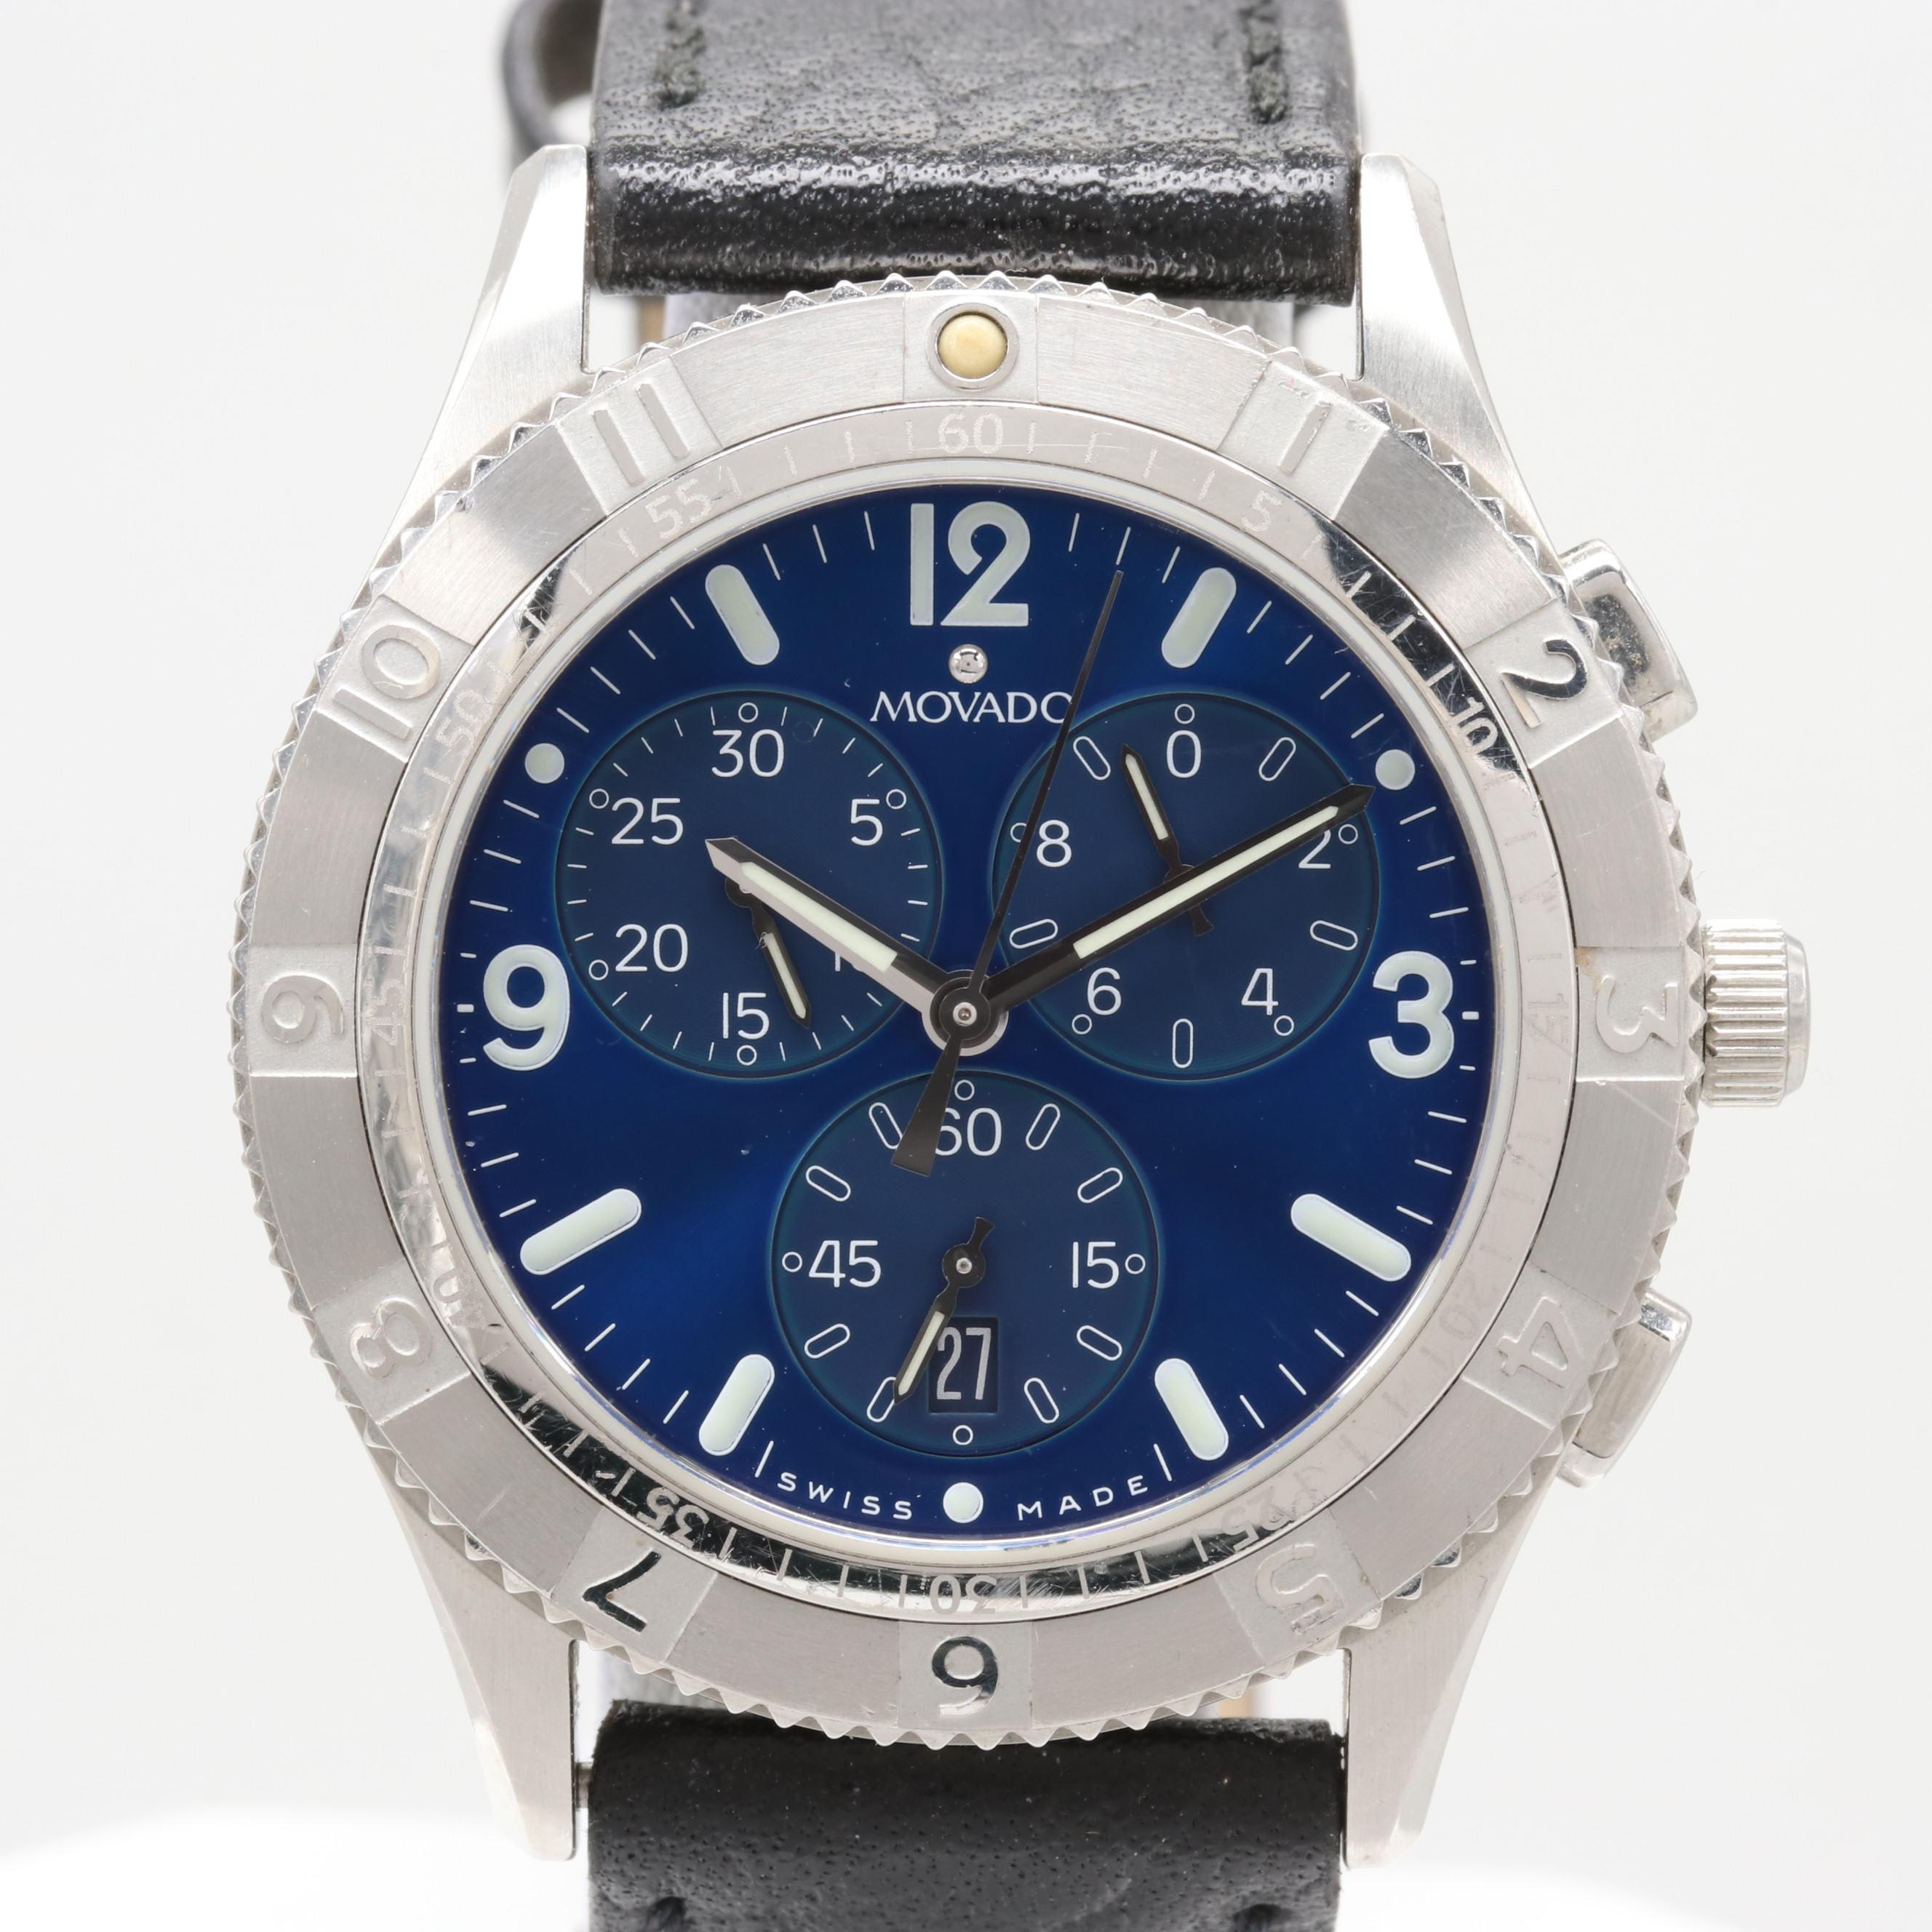 Movado Stainless Steel Chronograph Wristwatch